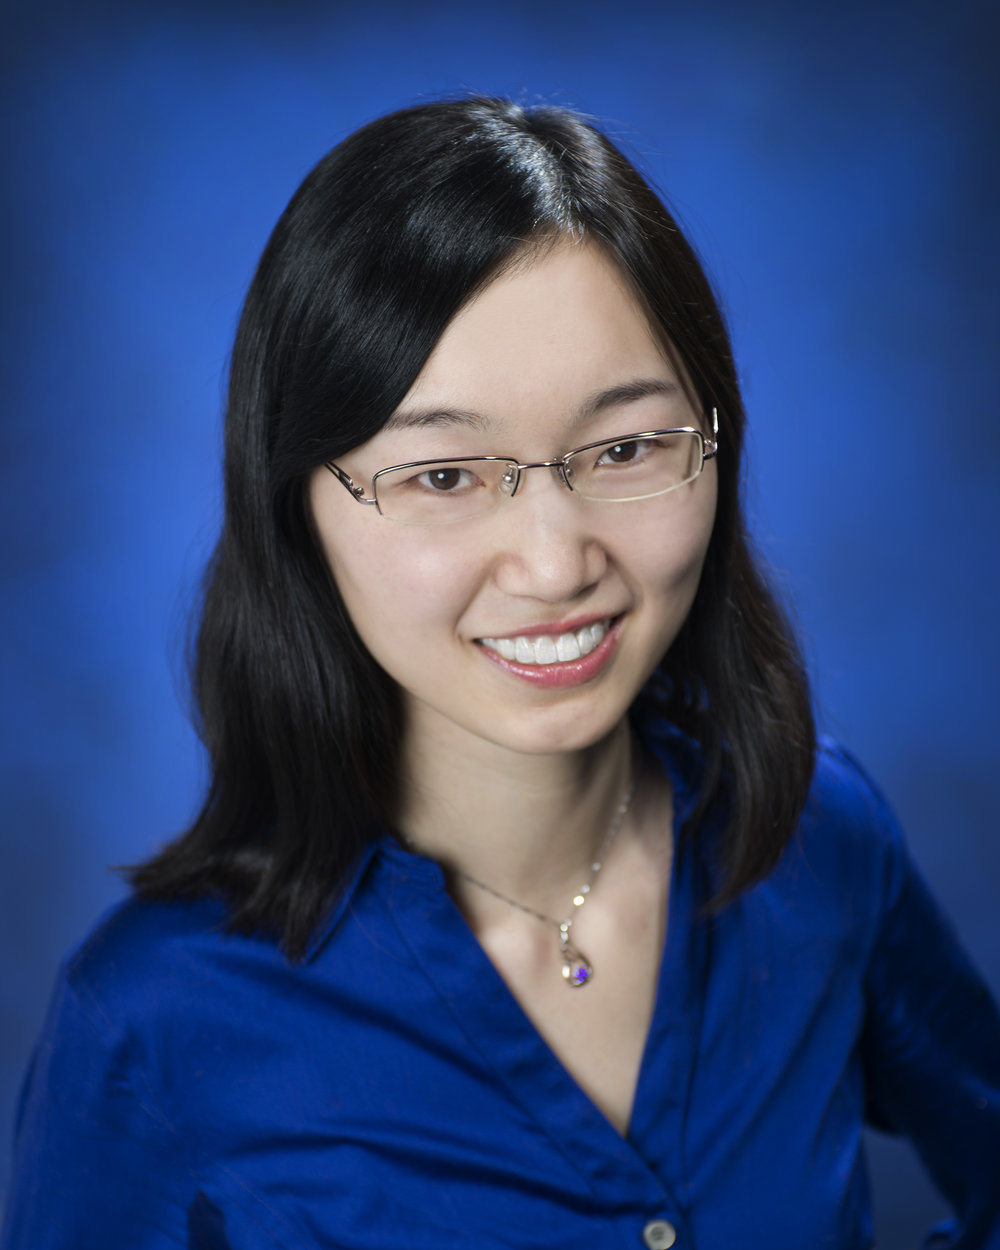 Fang Xu - Postdoctoral Fellow at Harvard University at Cynthia Friend's Lab.